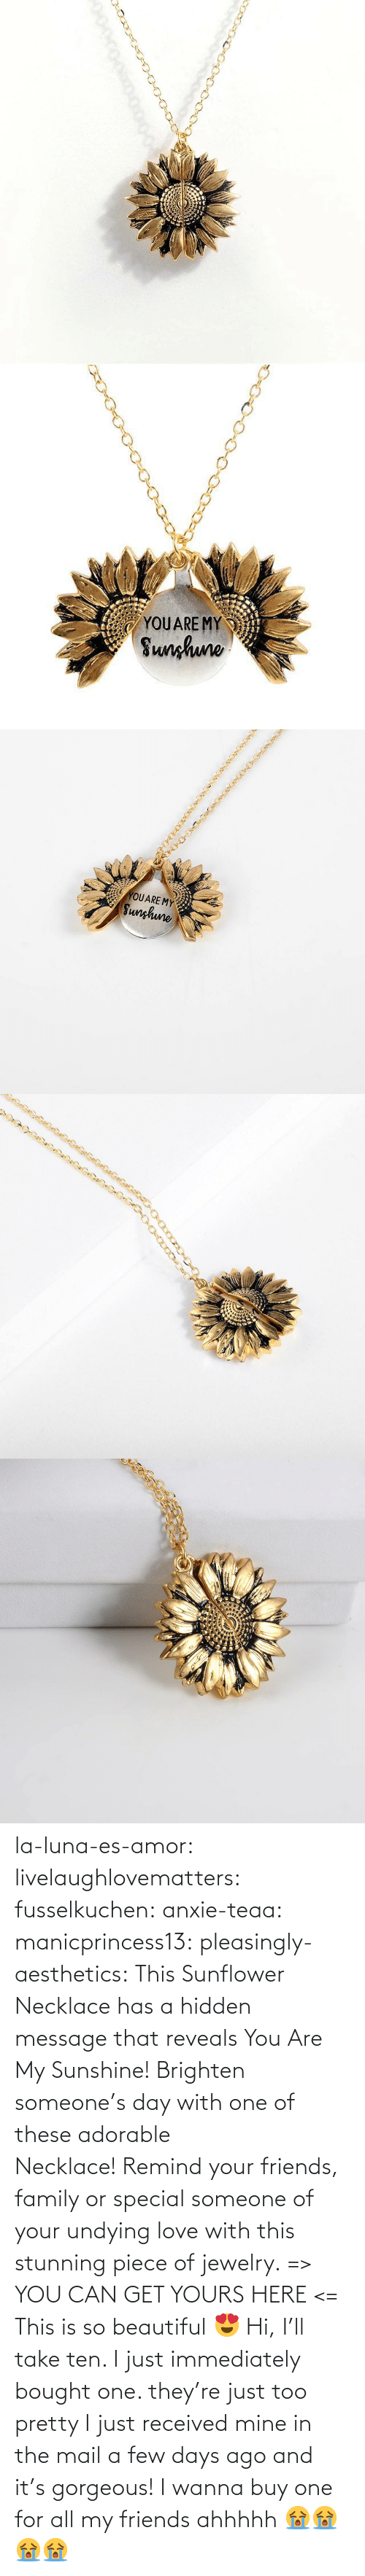 Hi I: YOUARE MY  Sunhuno   YOUARE MY  Sunghune la-luna-es-amor:  livelaughlovematters: fusselkuchen:  anxie-teaa:   manicprincess13:   pleasingly-aesthetics:  This Sunflower Necklace has a hidden message that reveals You Are My Sunshine! Brighten someone's day with one of these adorable Necklace! Remind your friends, family or special someone of your undying love with this stunning piece of jewelry. => YOU CAN GET YOURS HERE <=   This is so beautiful 😍    Hi, I'll take ten.    I just immediately bought one. they're just too pretty   I just received mine in the mail a few days ago and it's gorgeous!   I wanna buy one for all my friends ahhhhh 😭😭😭😭